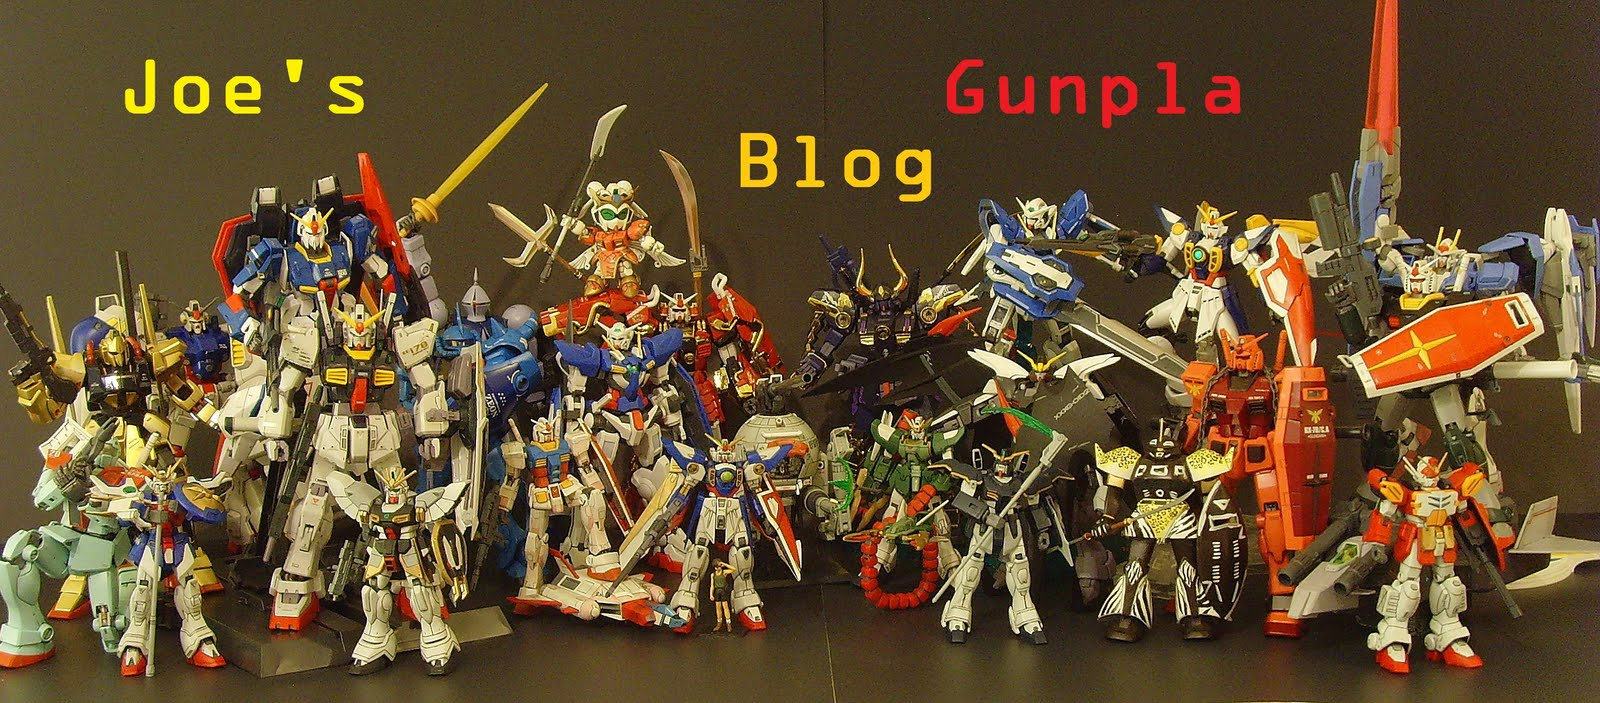 Joe's Gunpla World